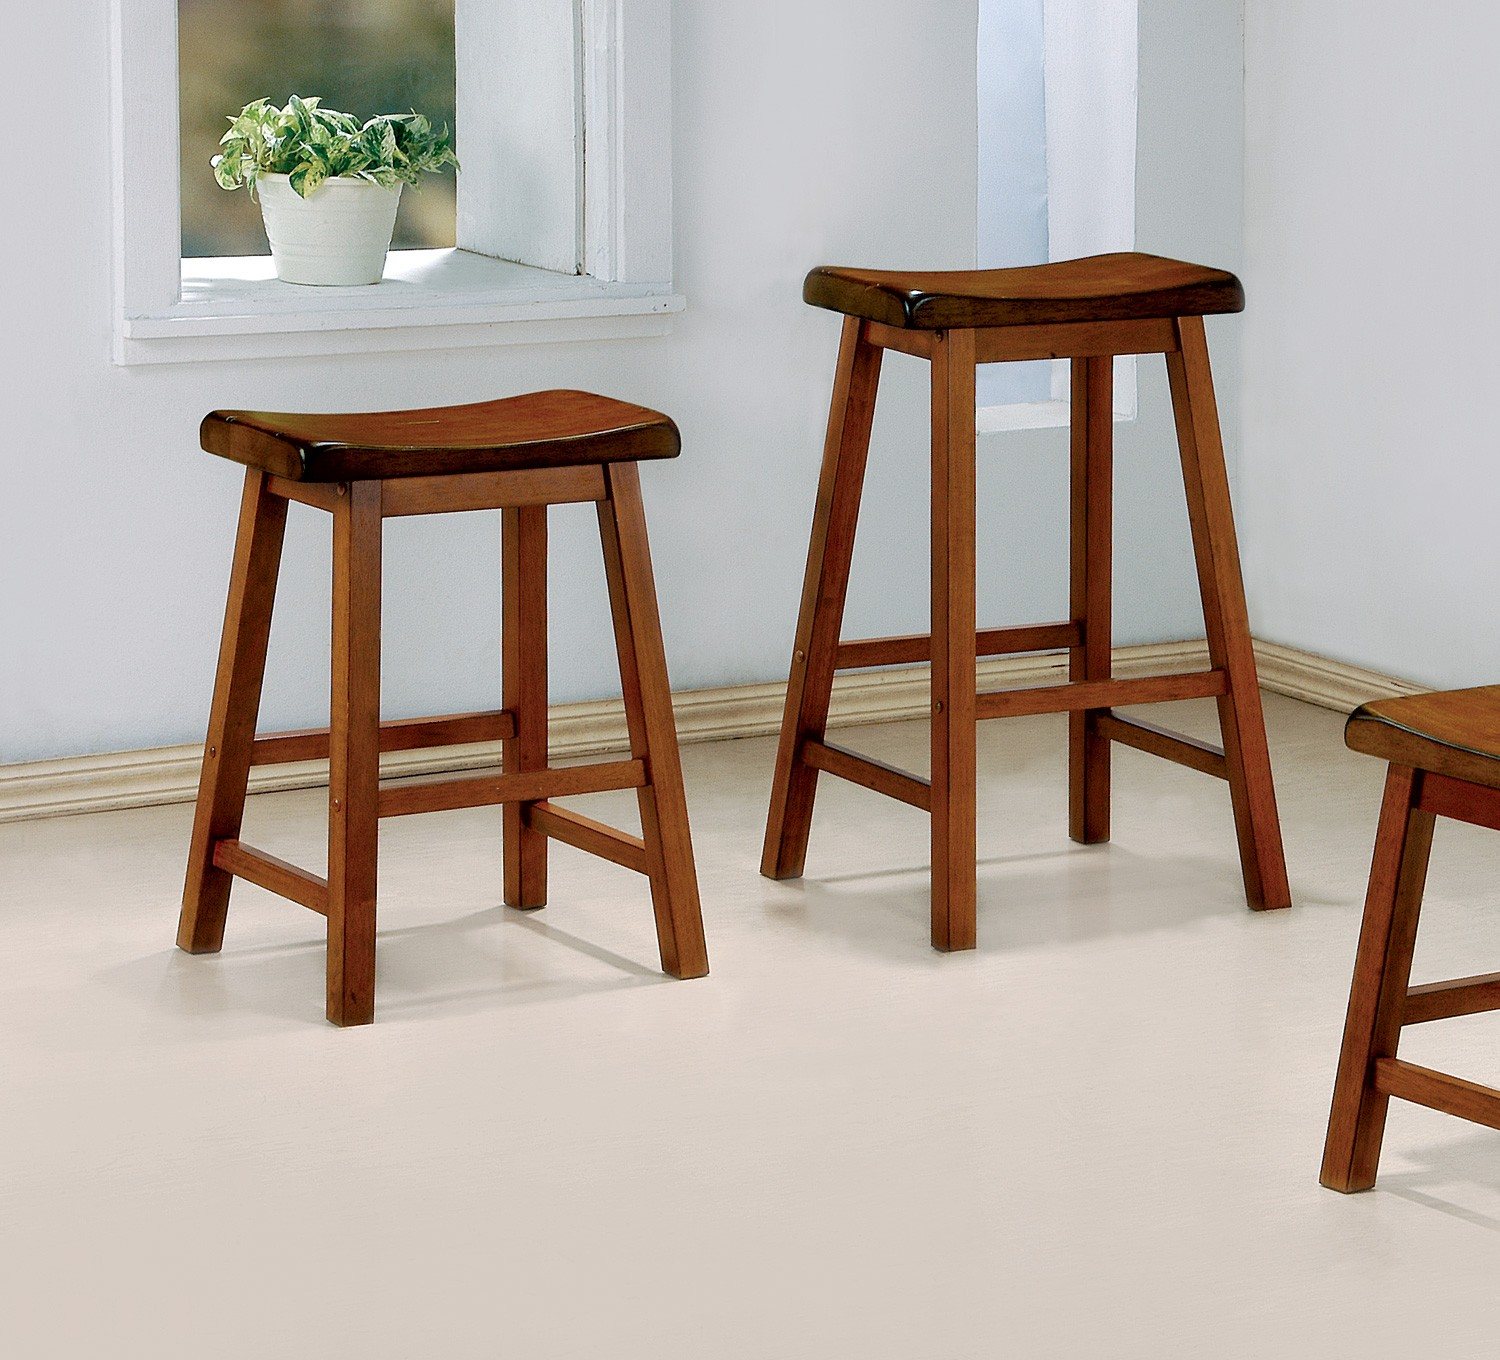 Cozy All Images wooden bar stool chairs